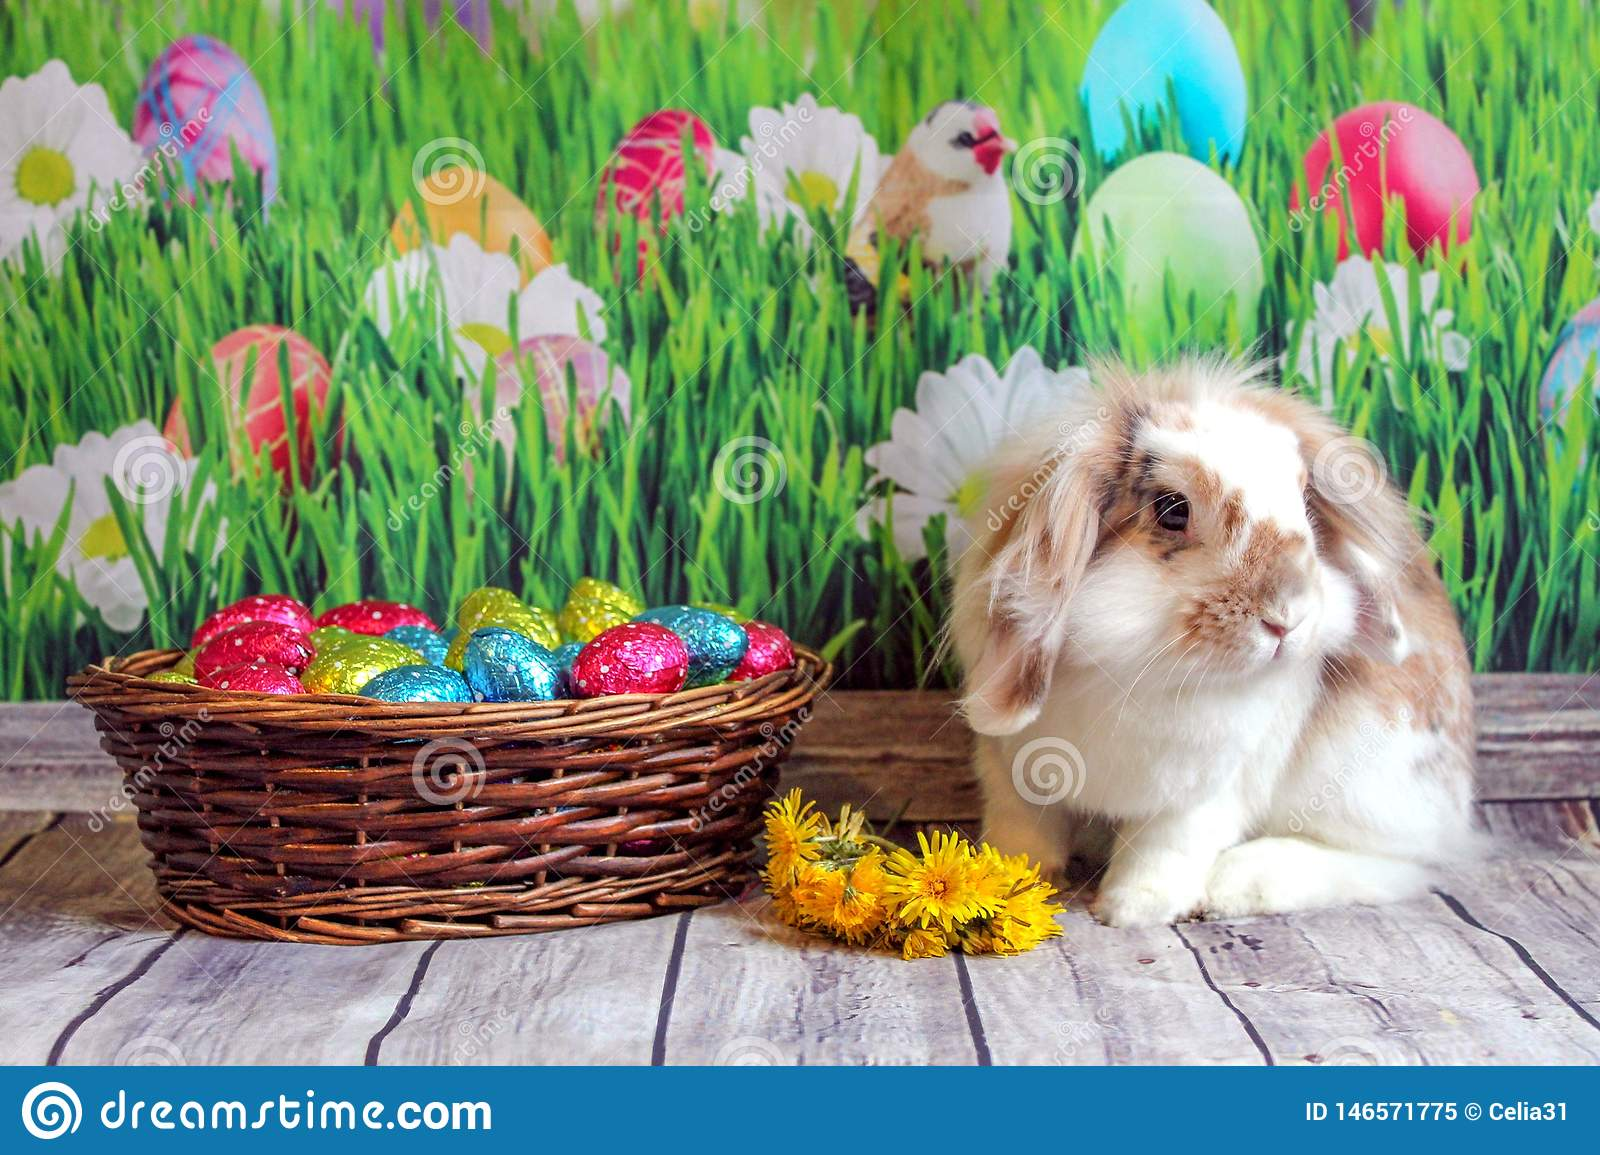 Easter bunny, cute rabbit with a basket of Easter eggs